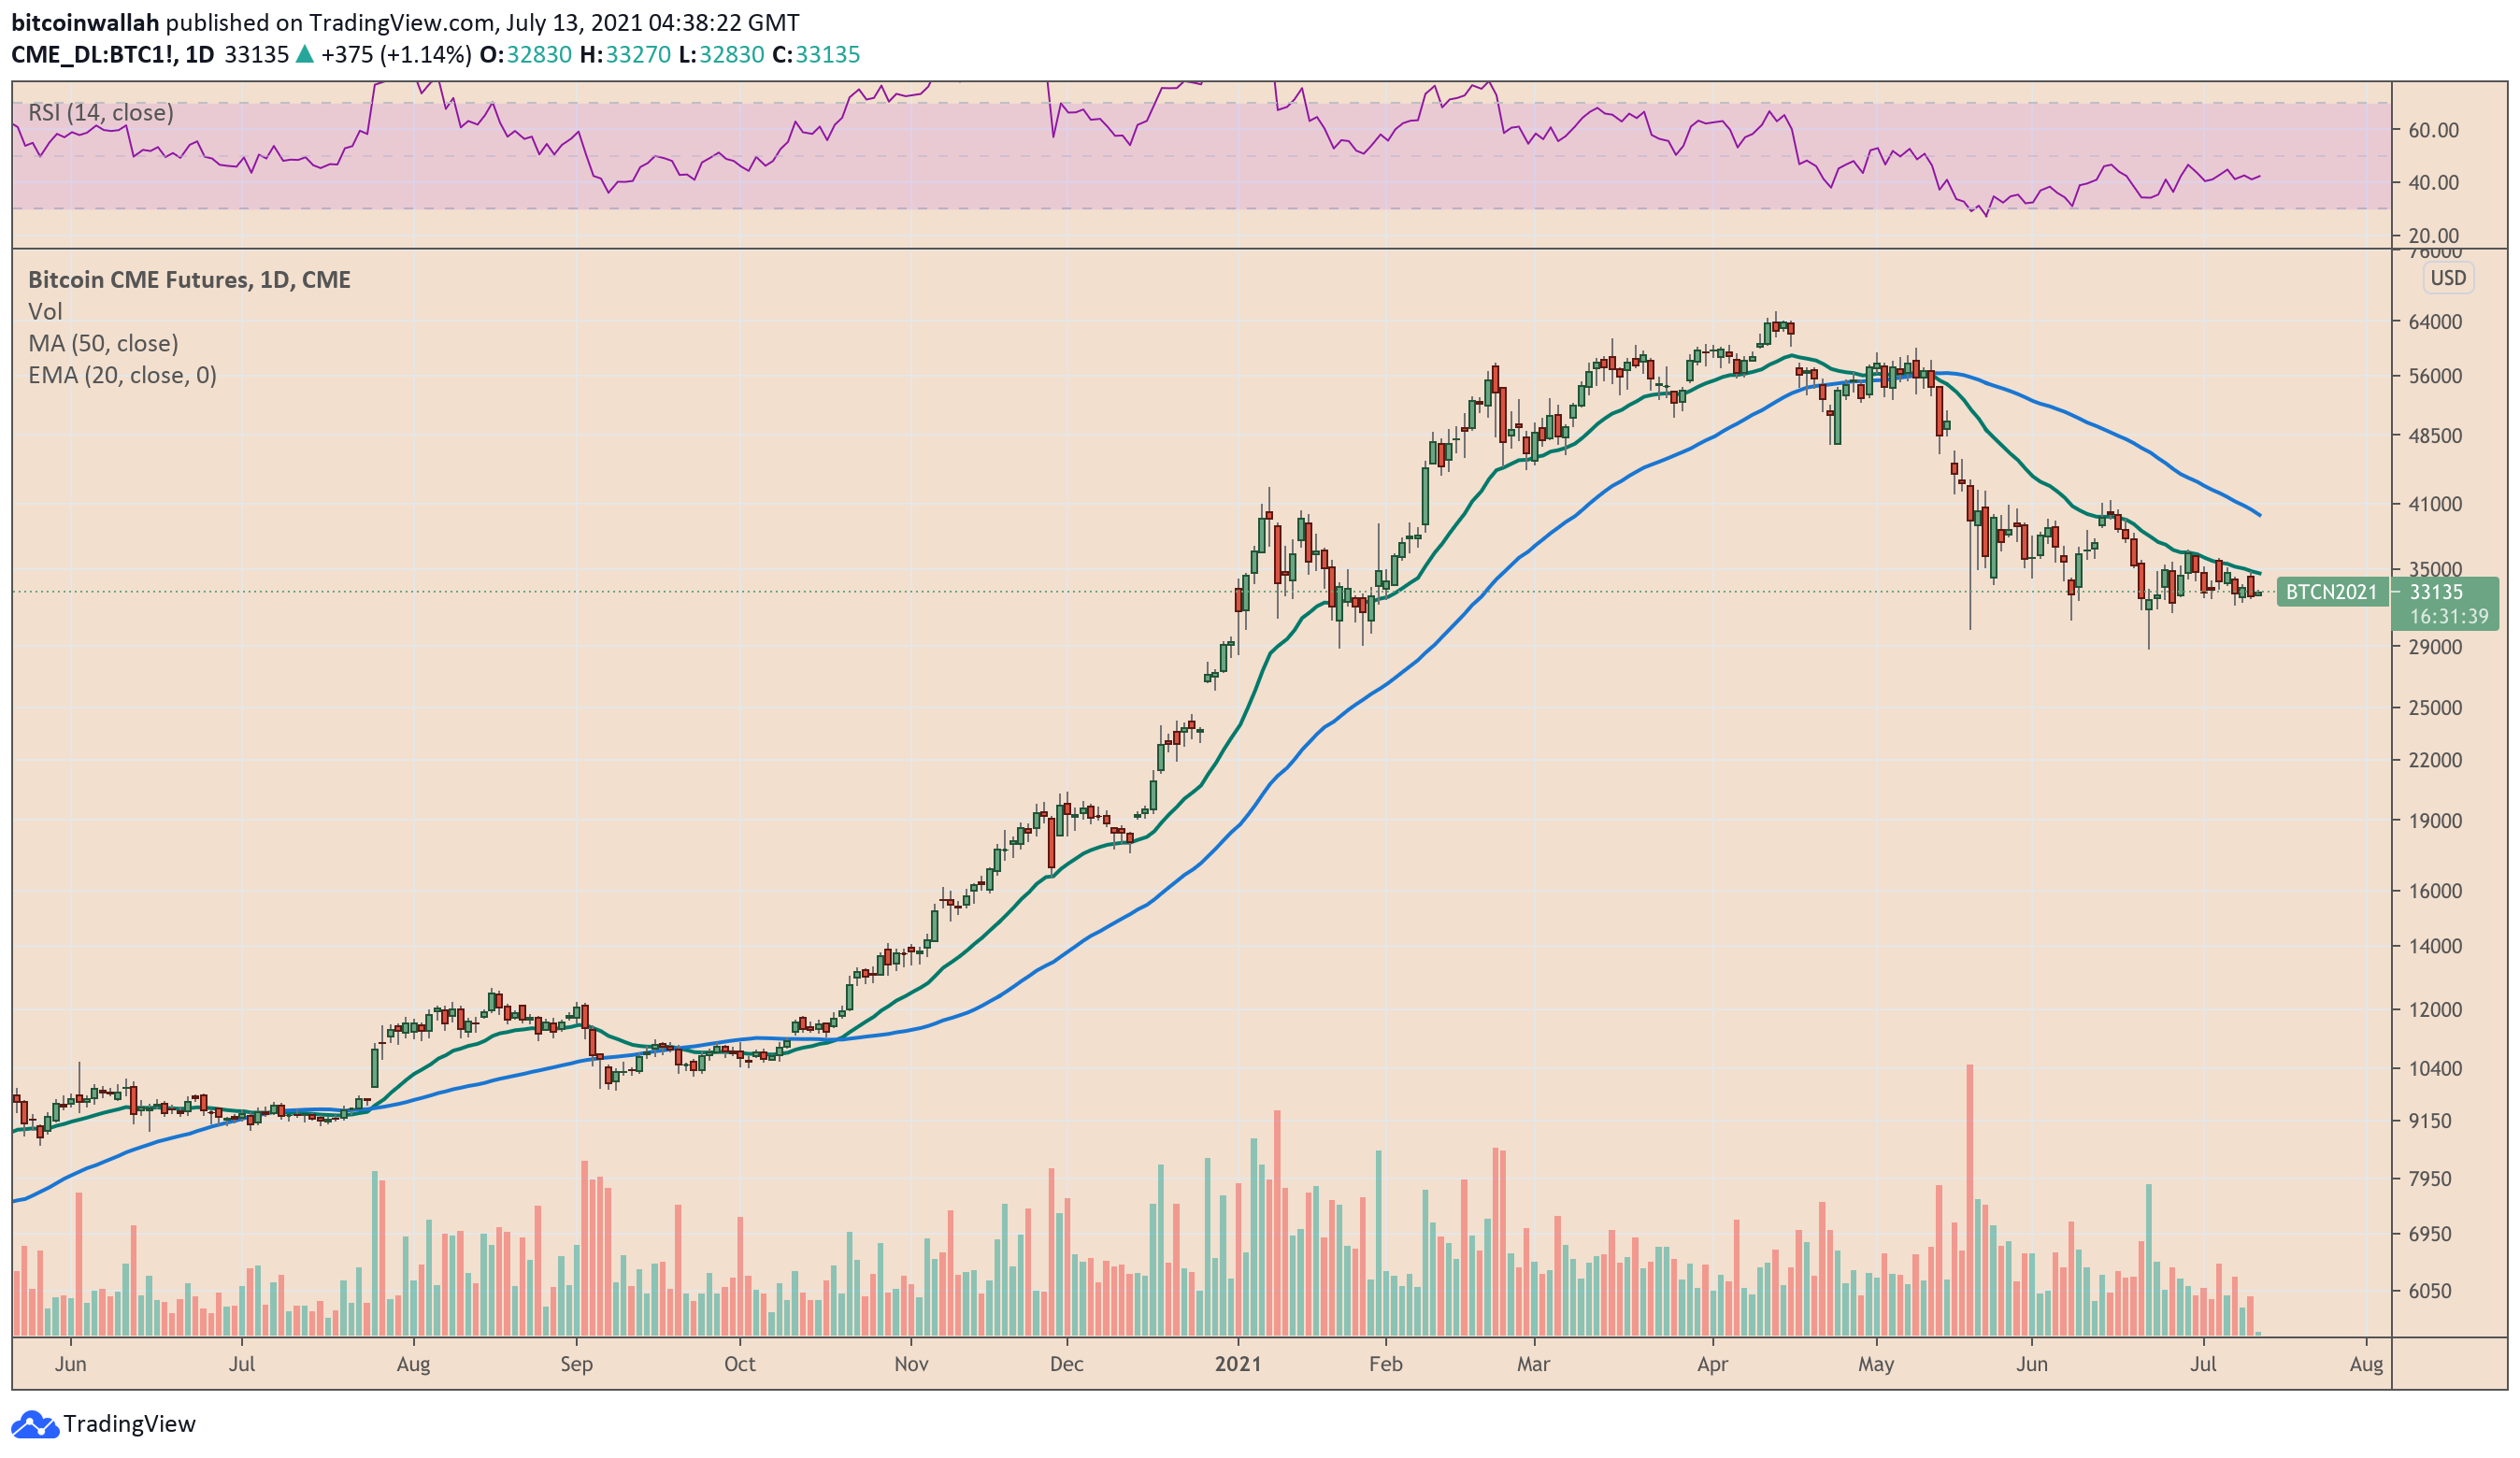 Bitcoin rebounds from K support as US dollar inflation comes back into focus